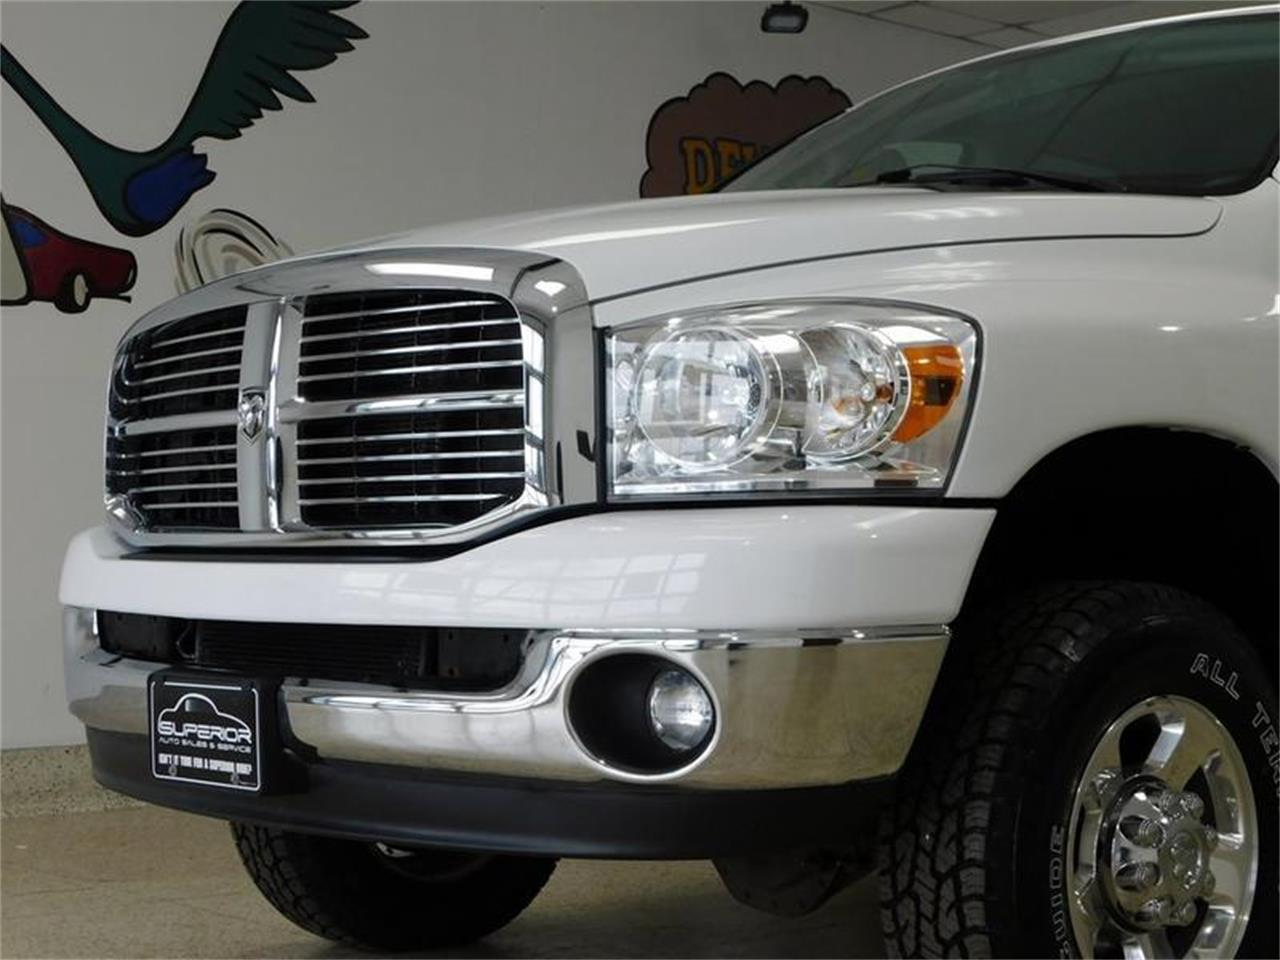 2009 Dodge Ram 3500 for sale in Hamburg, NY – photo 44